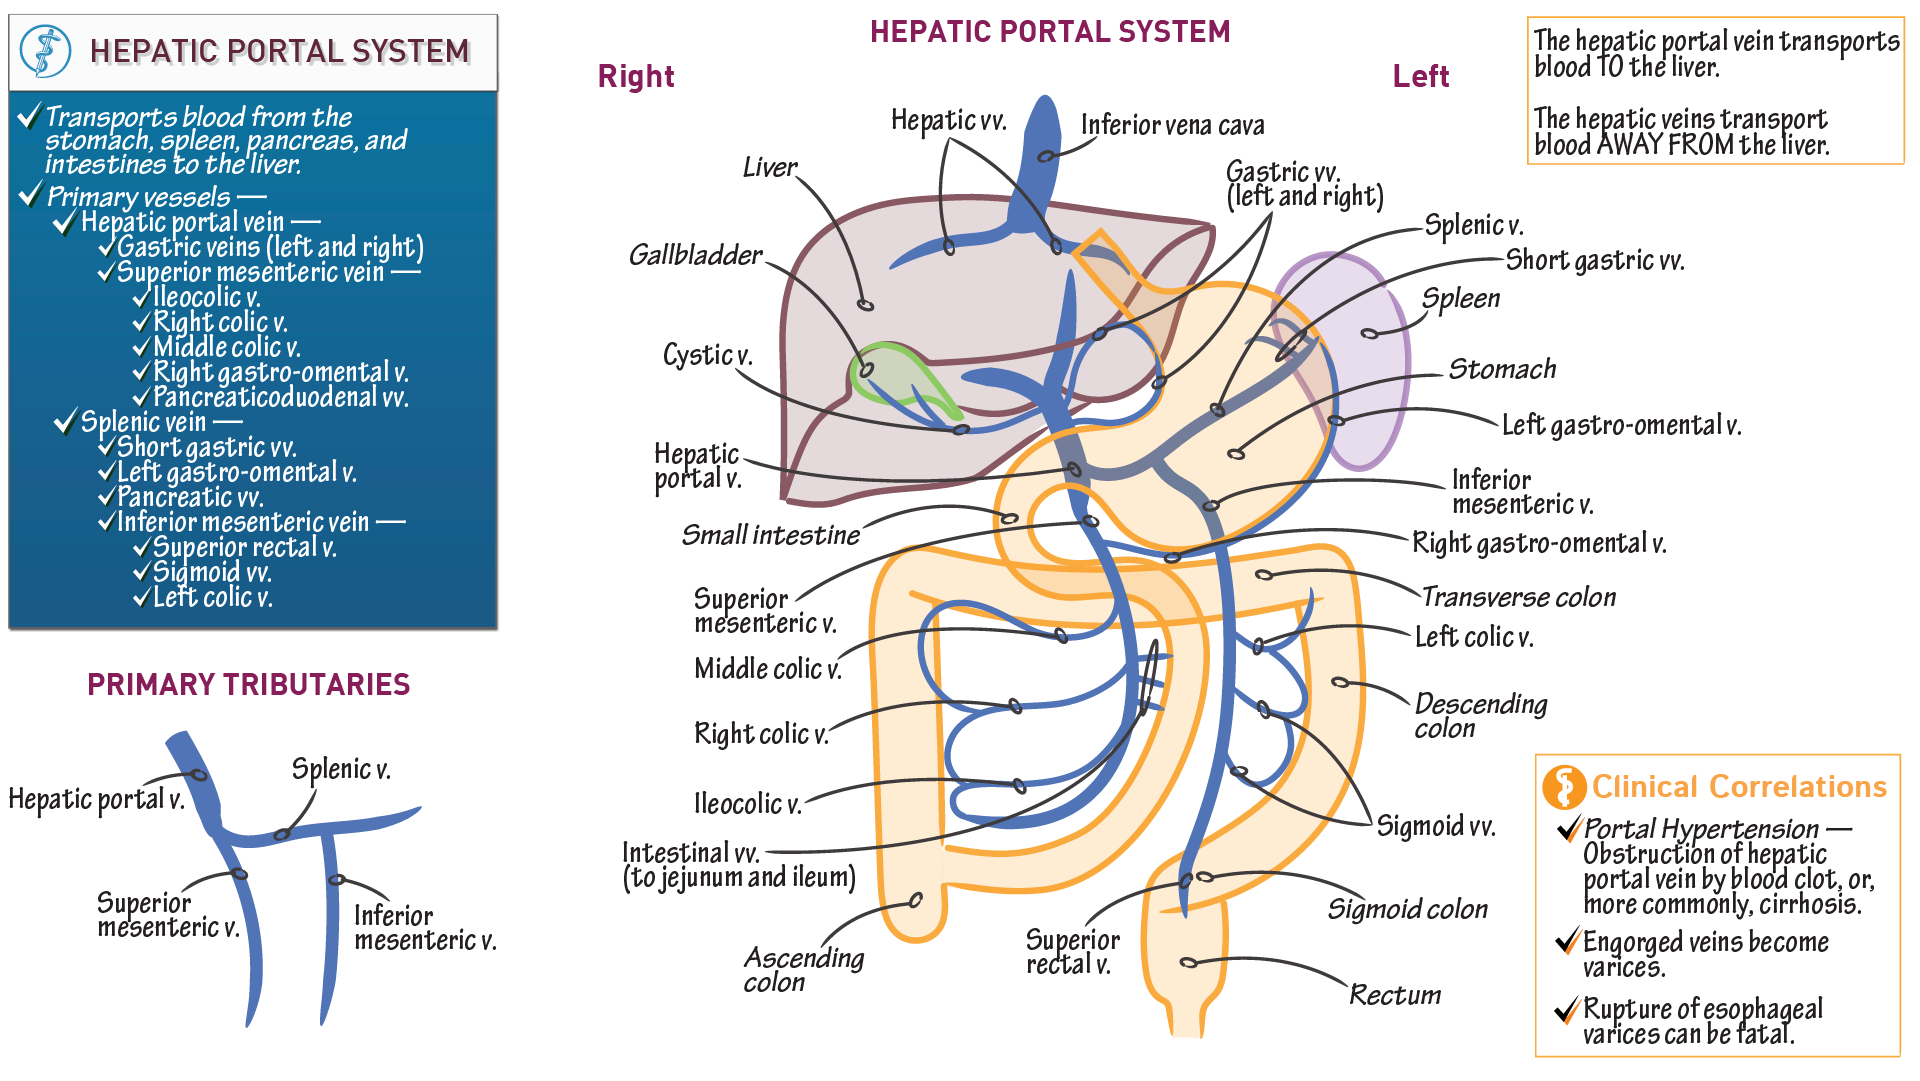 gross anatomy hepatic portal venous system draw it to know it rh drawittoknowit com Hepatic Portal Vein and Artery Hepatic Portal Vein Hepatic Vein Inferior Vena Cava